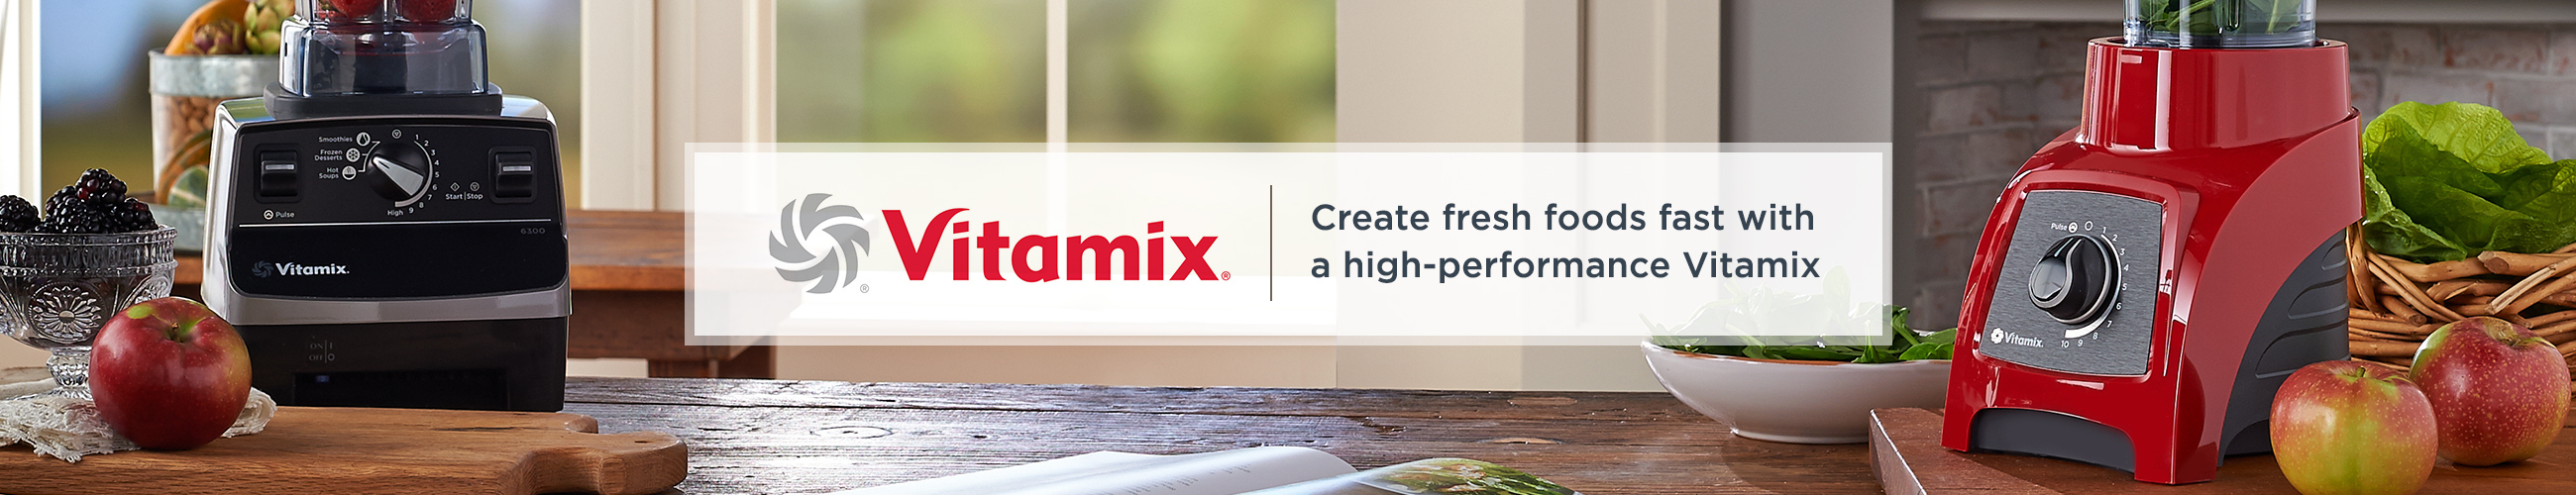 Vitamix, Create fresh foods fast with a high-performance Vitamix